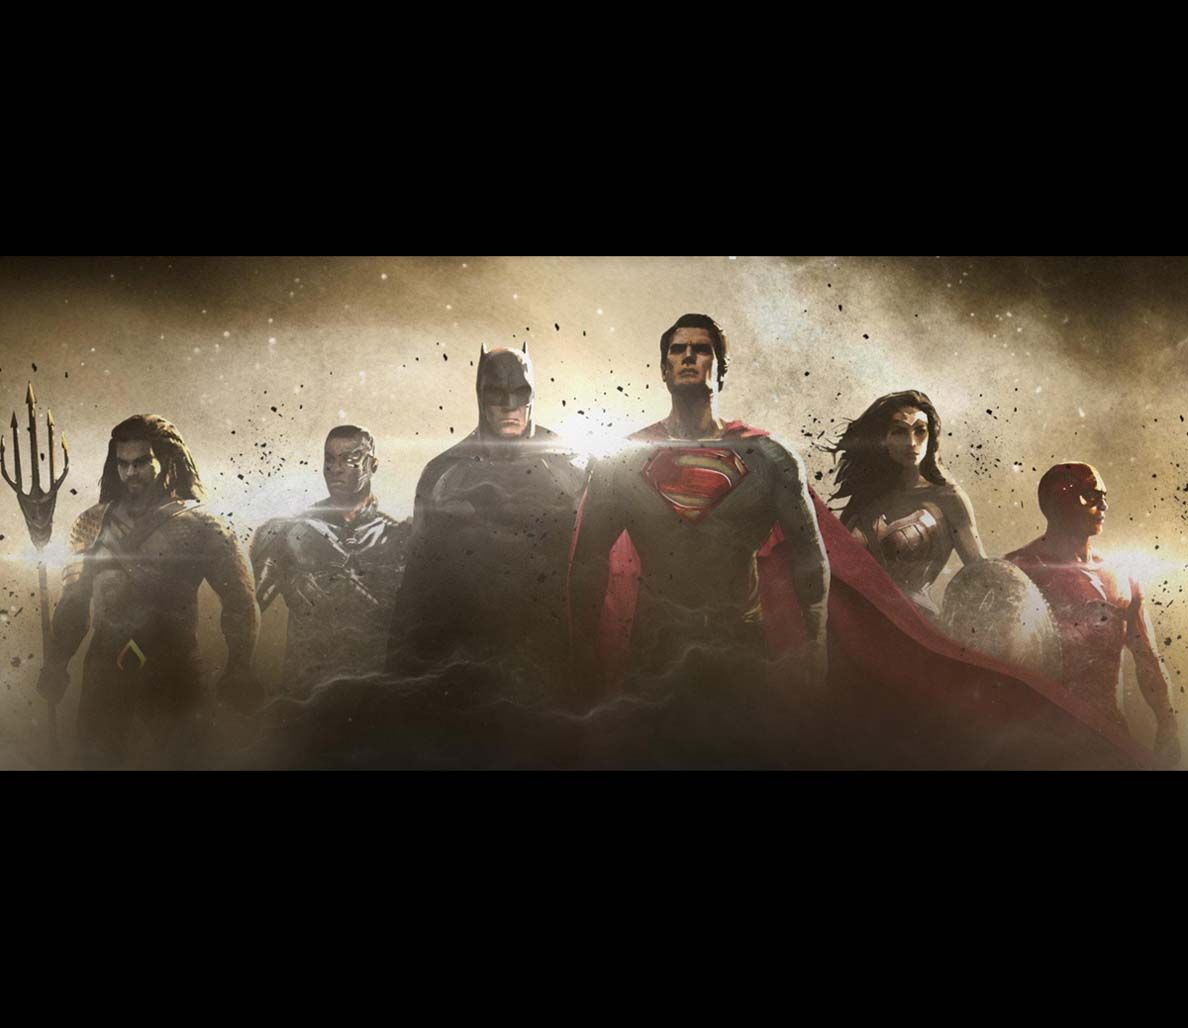 Zack+Snyder+Just+Dropped+Some+Major+News+About+the+New+'Justice+League'+Movie